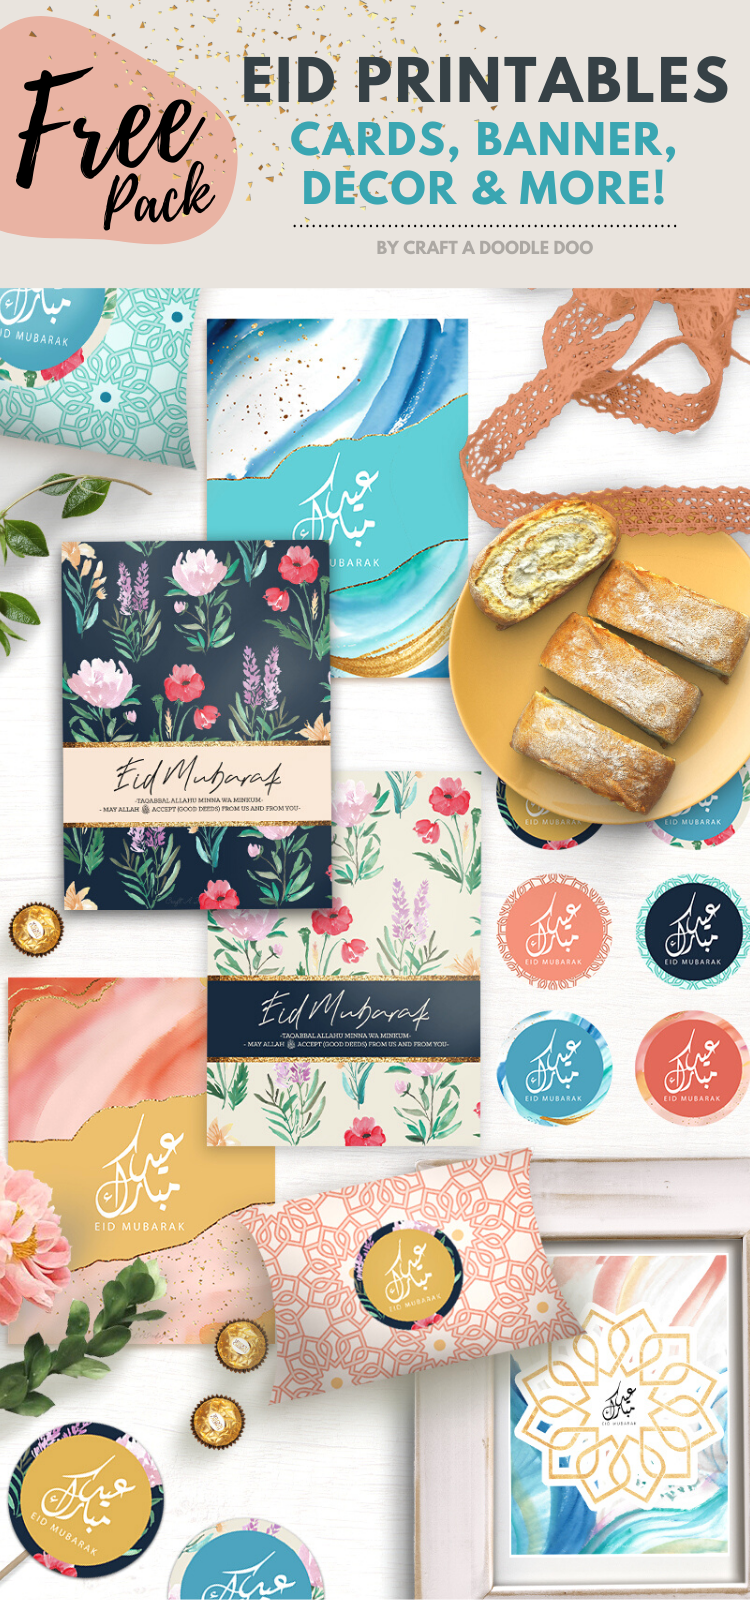 Free Printable Eid Celebration Pack: Eid Cards, Buntings, Envelopes and Eid Party Decor! / Craft A Doodle Doo #diy #eidcards #eid #ramadan #eid #greetings #printable #download #eidprintables #illustrations #graphics #watercolor #cards #partydecor #decor #homedecor #freebies